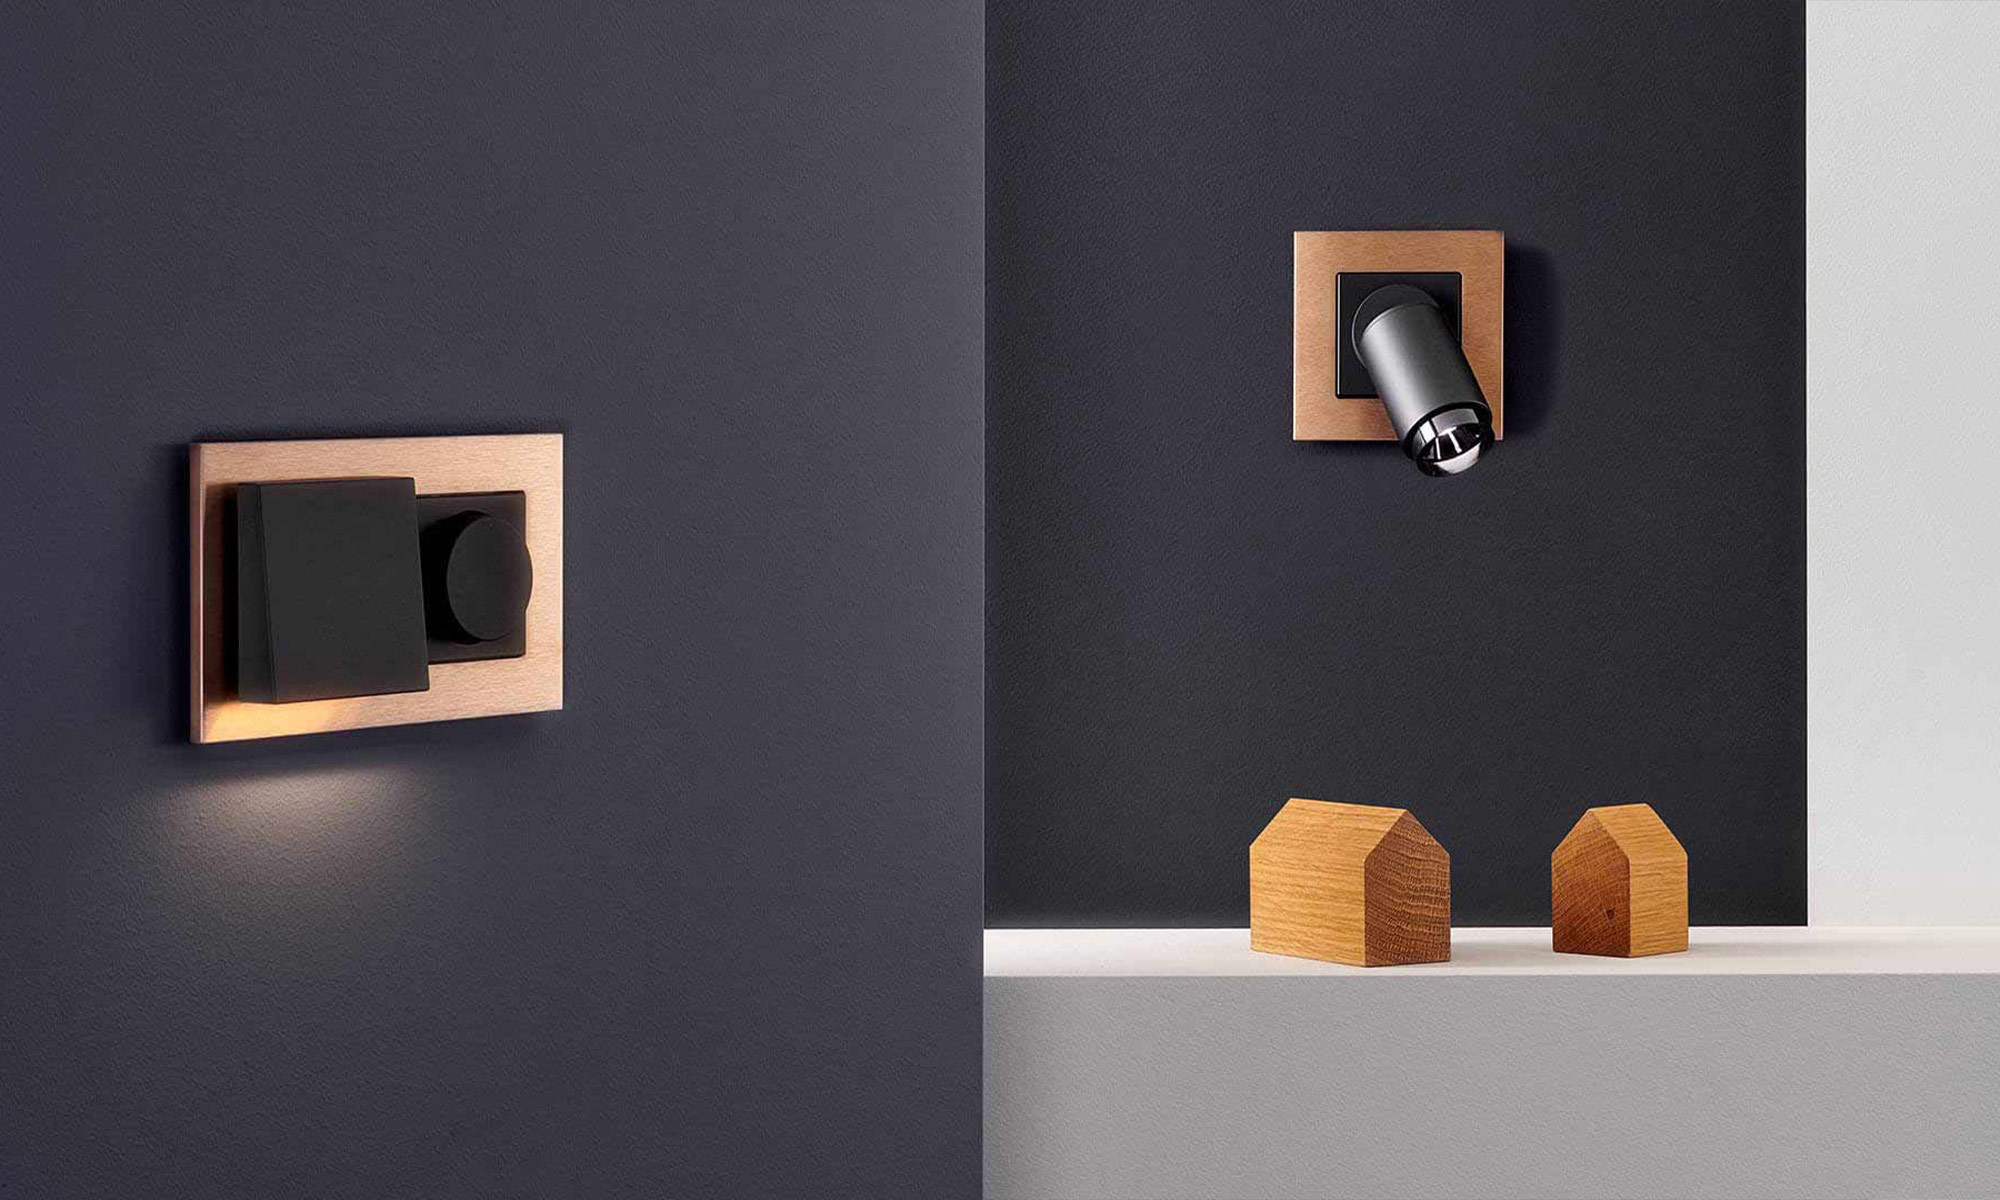 Plug and light by Gira for modern kitchen lighting.